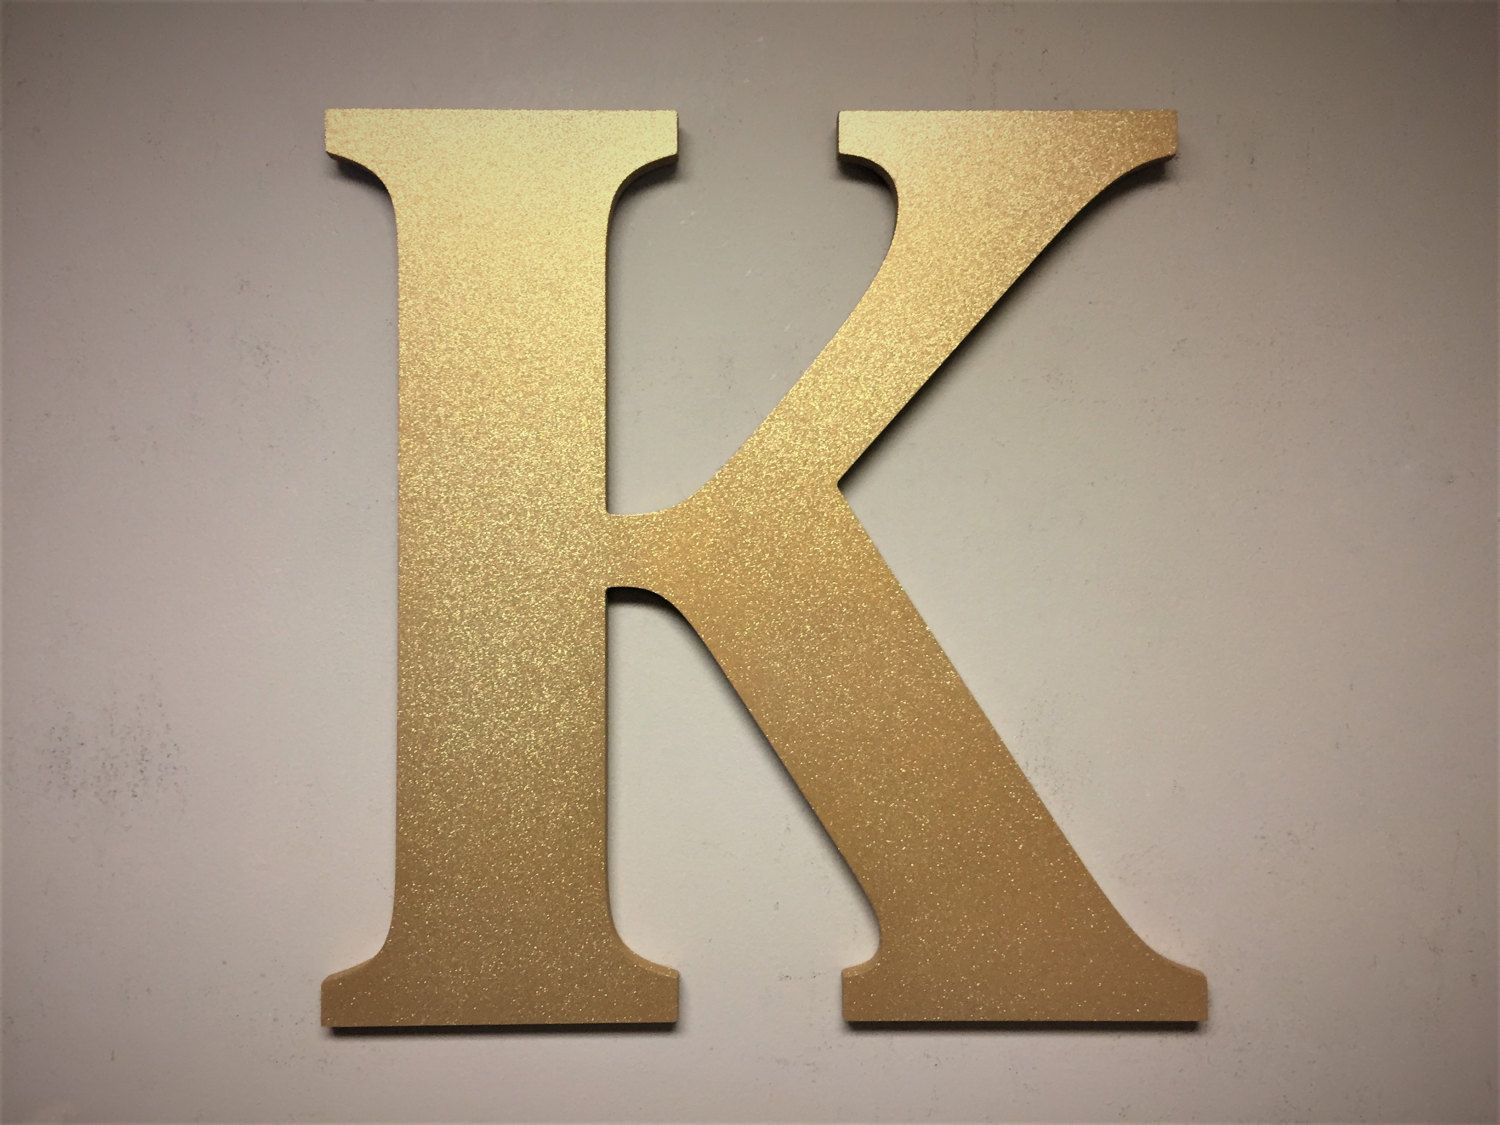 Gold Sparkel Letter K Large Free Standing Monogram Home Decor Wall Hanging Nursery Wedding Bridal Shower Idea By Howdyowl On Etsy